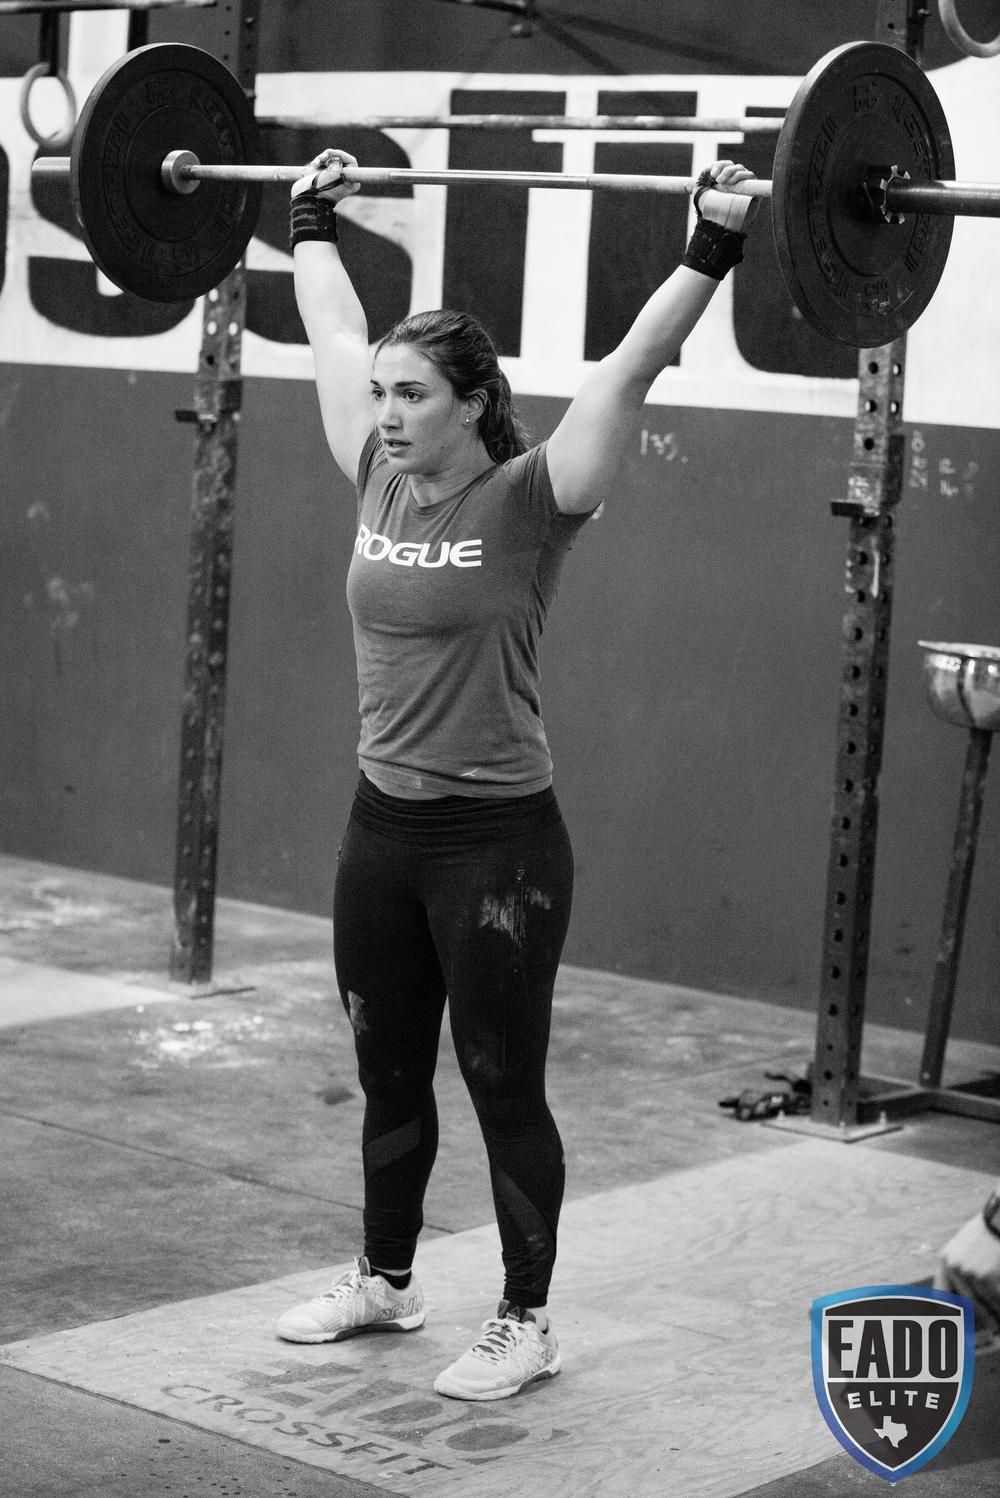 EaDo Elite Athlete Taylor Portugal   Photo Credit: Sierra Prime